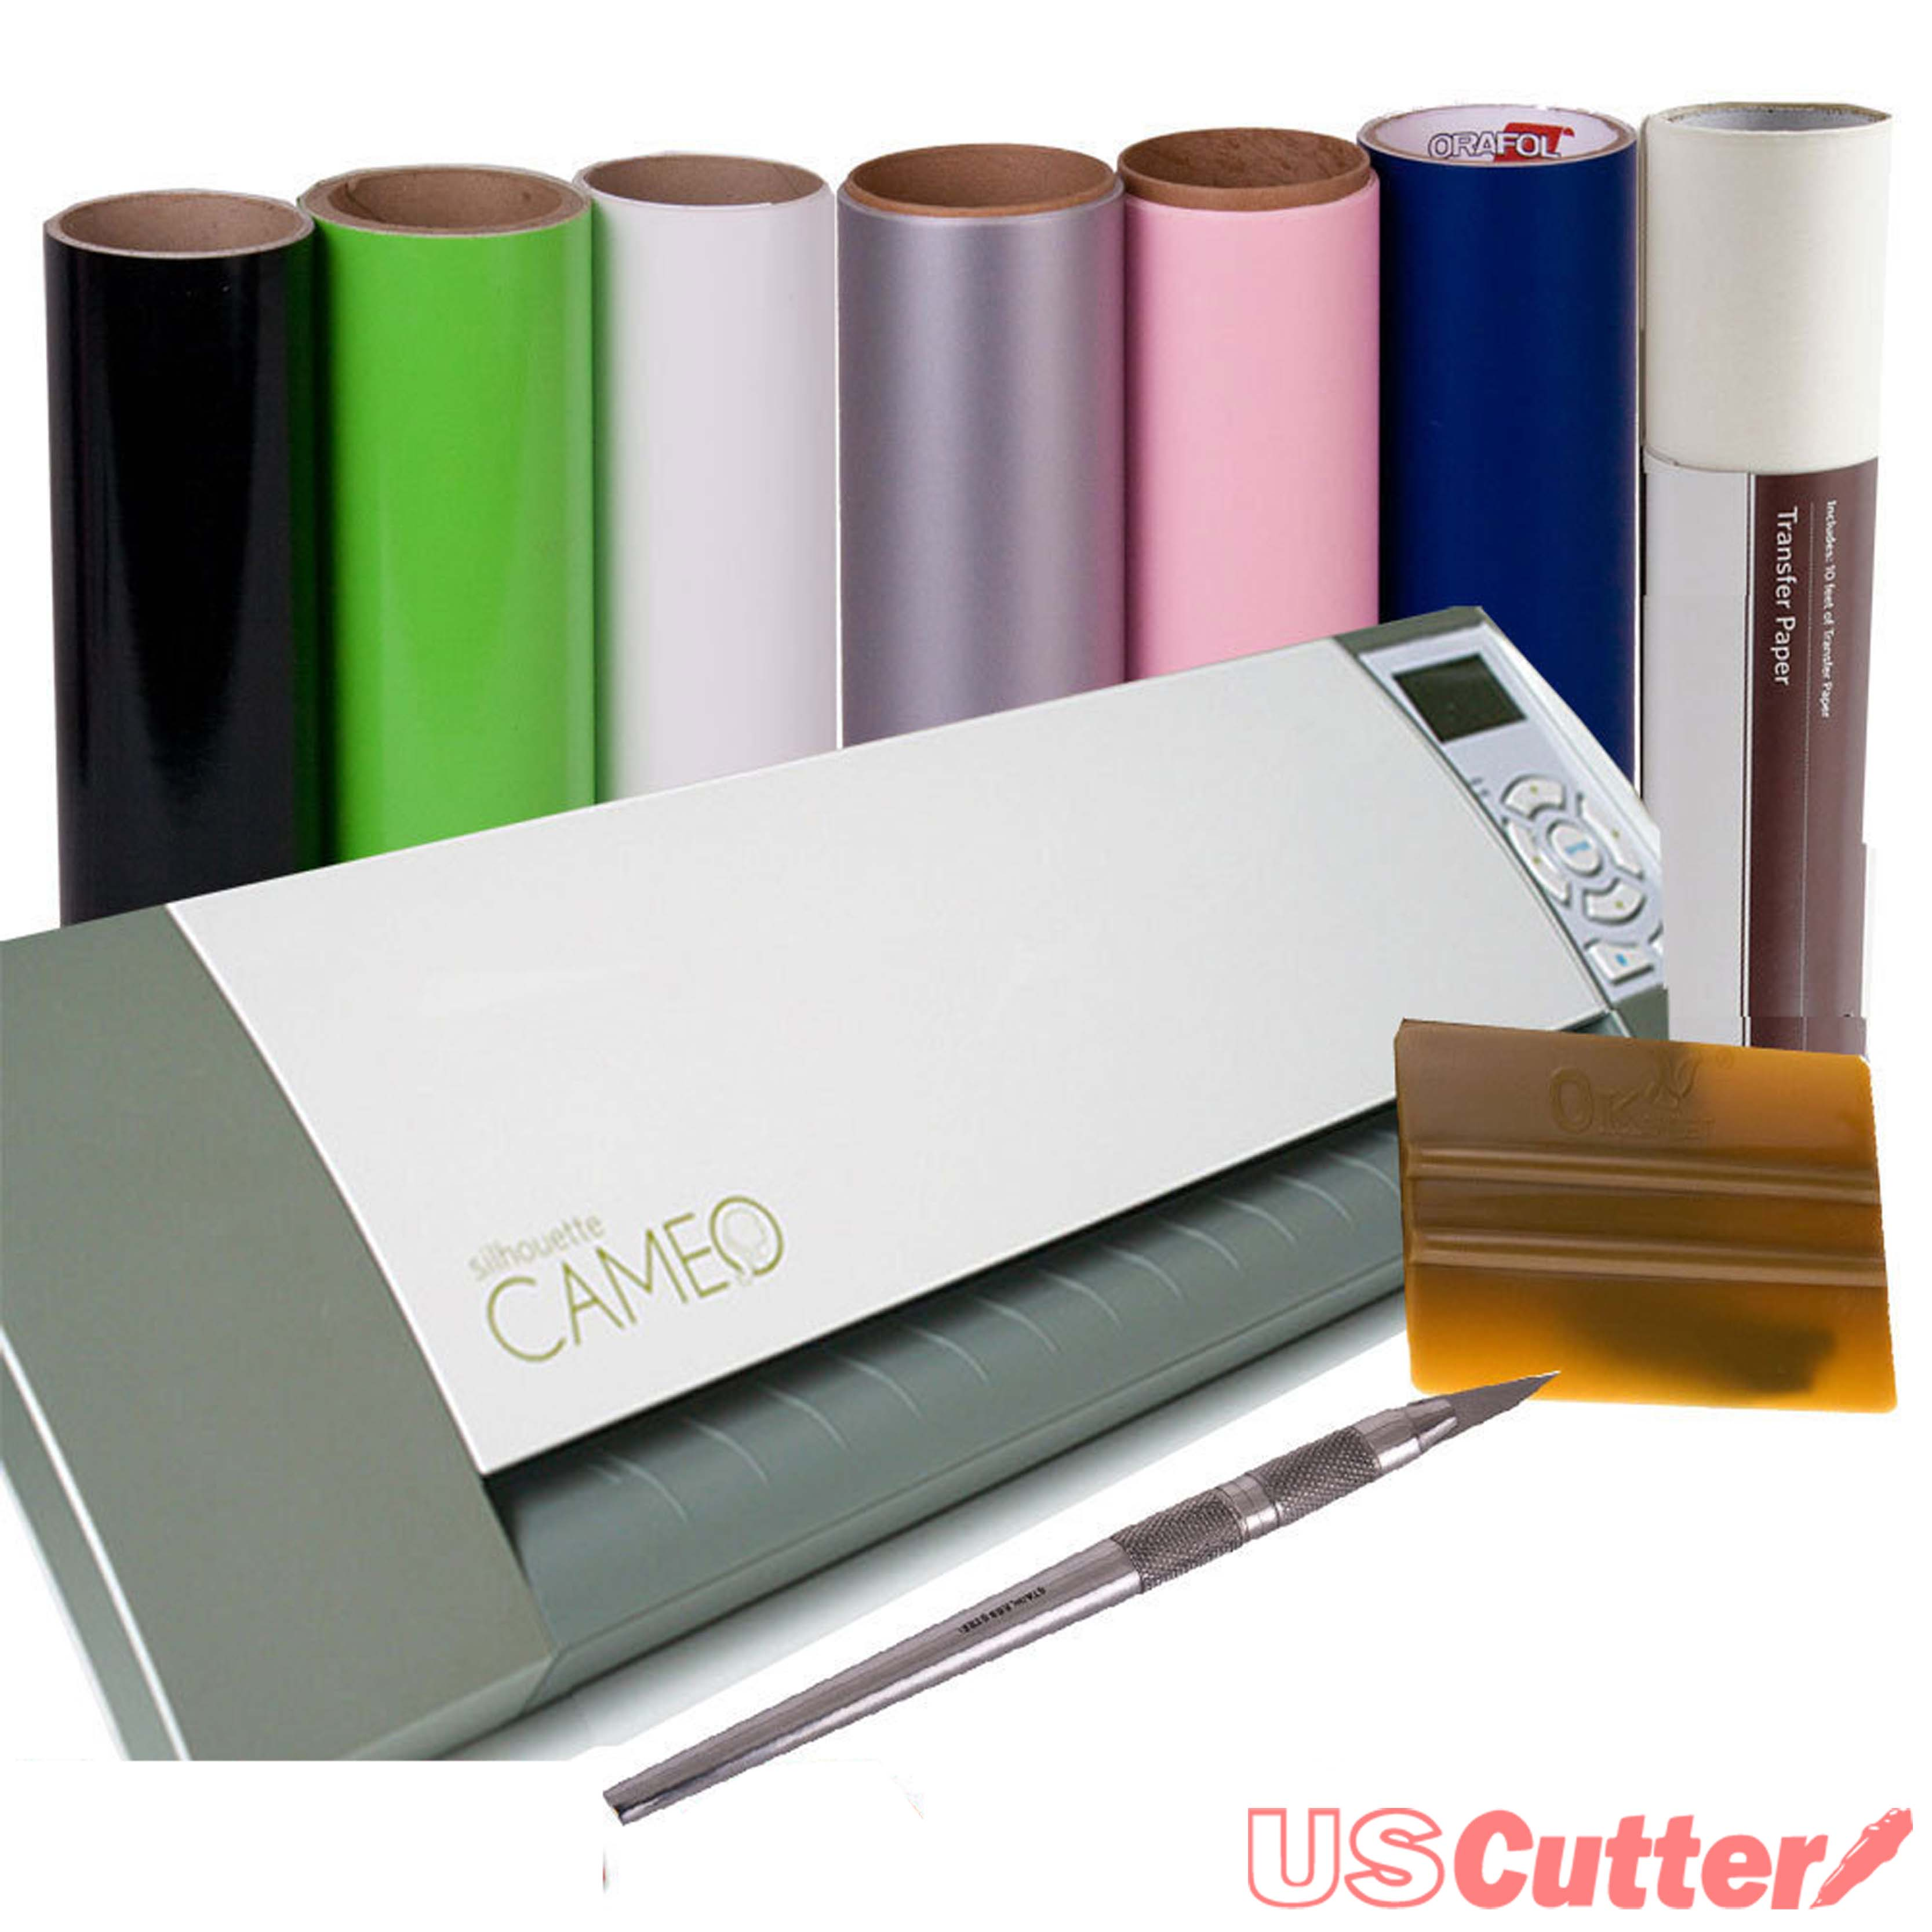 Silhouette Cameo Deluxe Bundle with Multi Colored Vinyl Rolls.